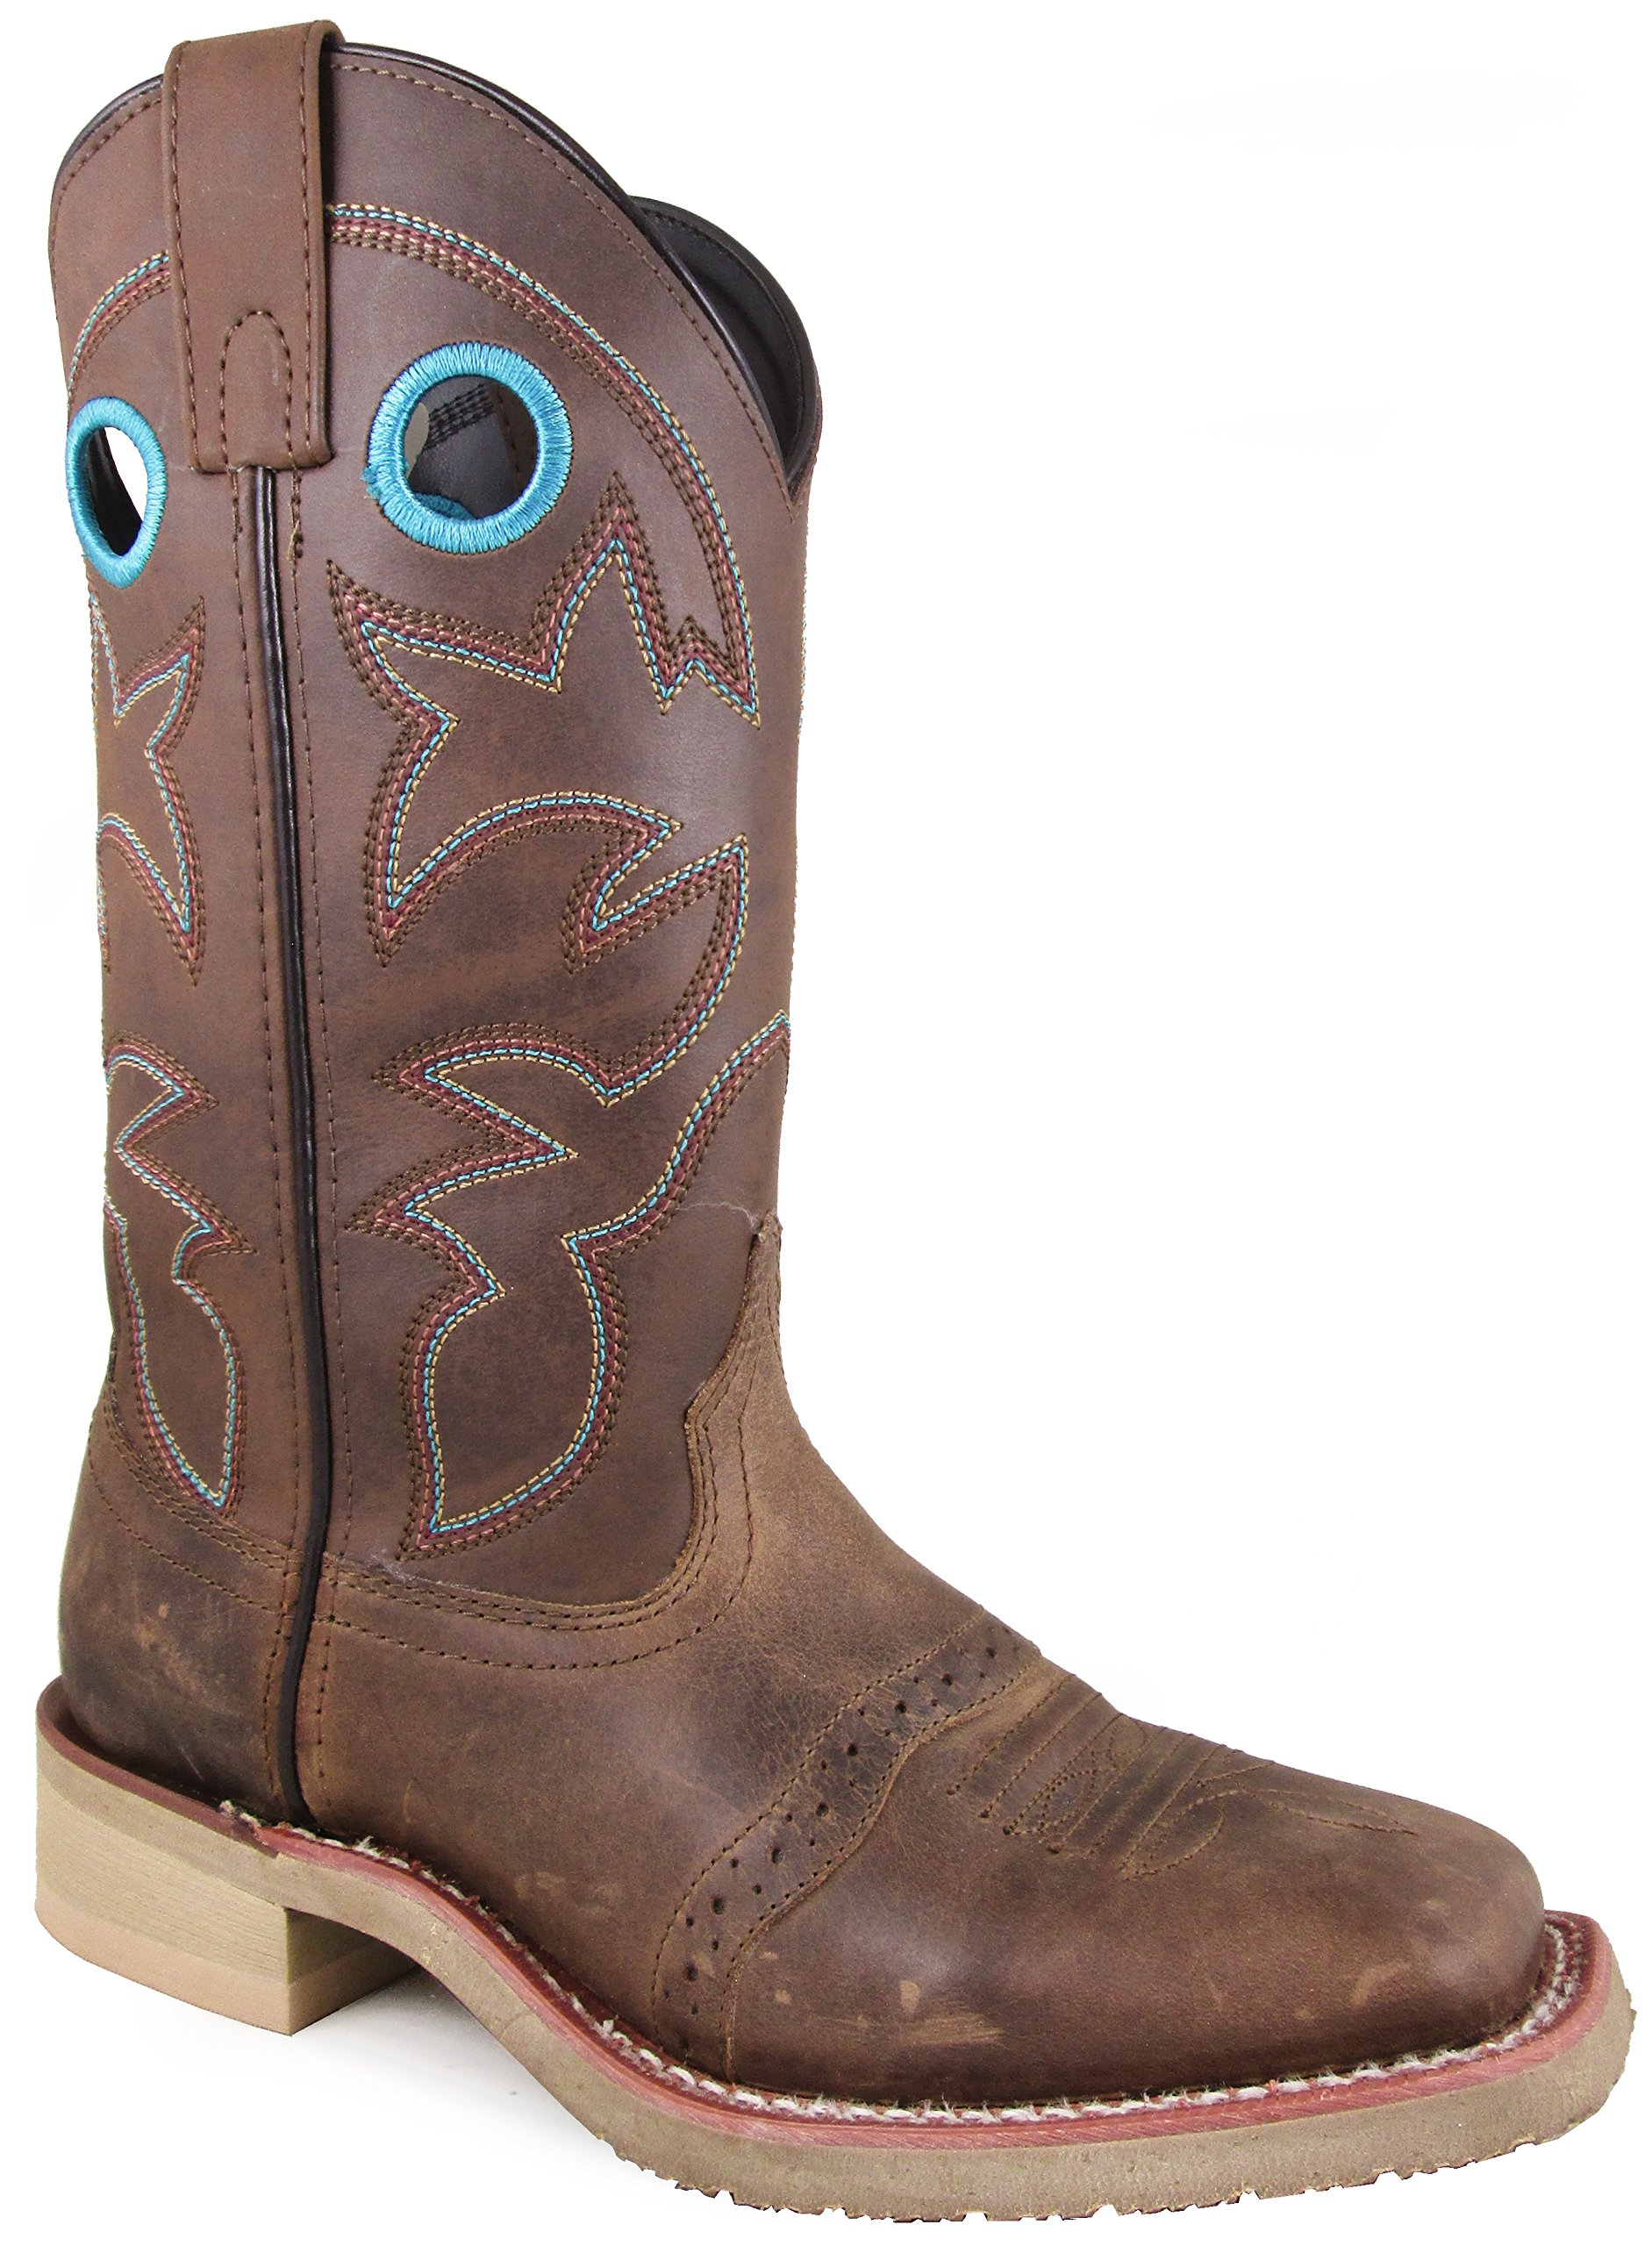 Smoky Mountain Women's Hayden Pulll On Holes Square Toe Brown Oil Distress/Brown Boots 10M